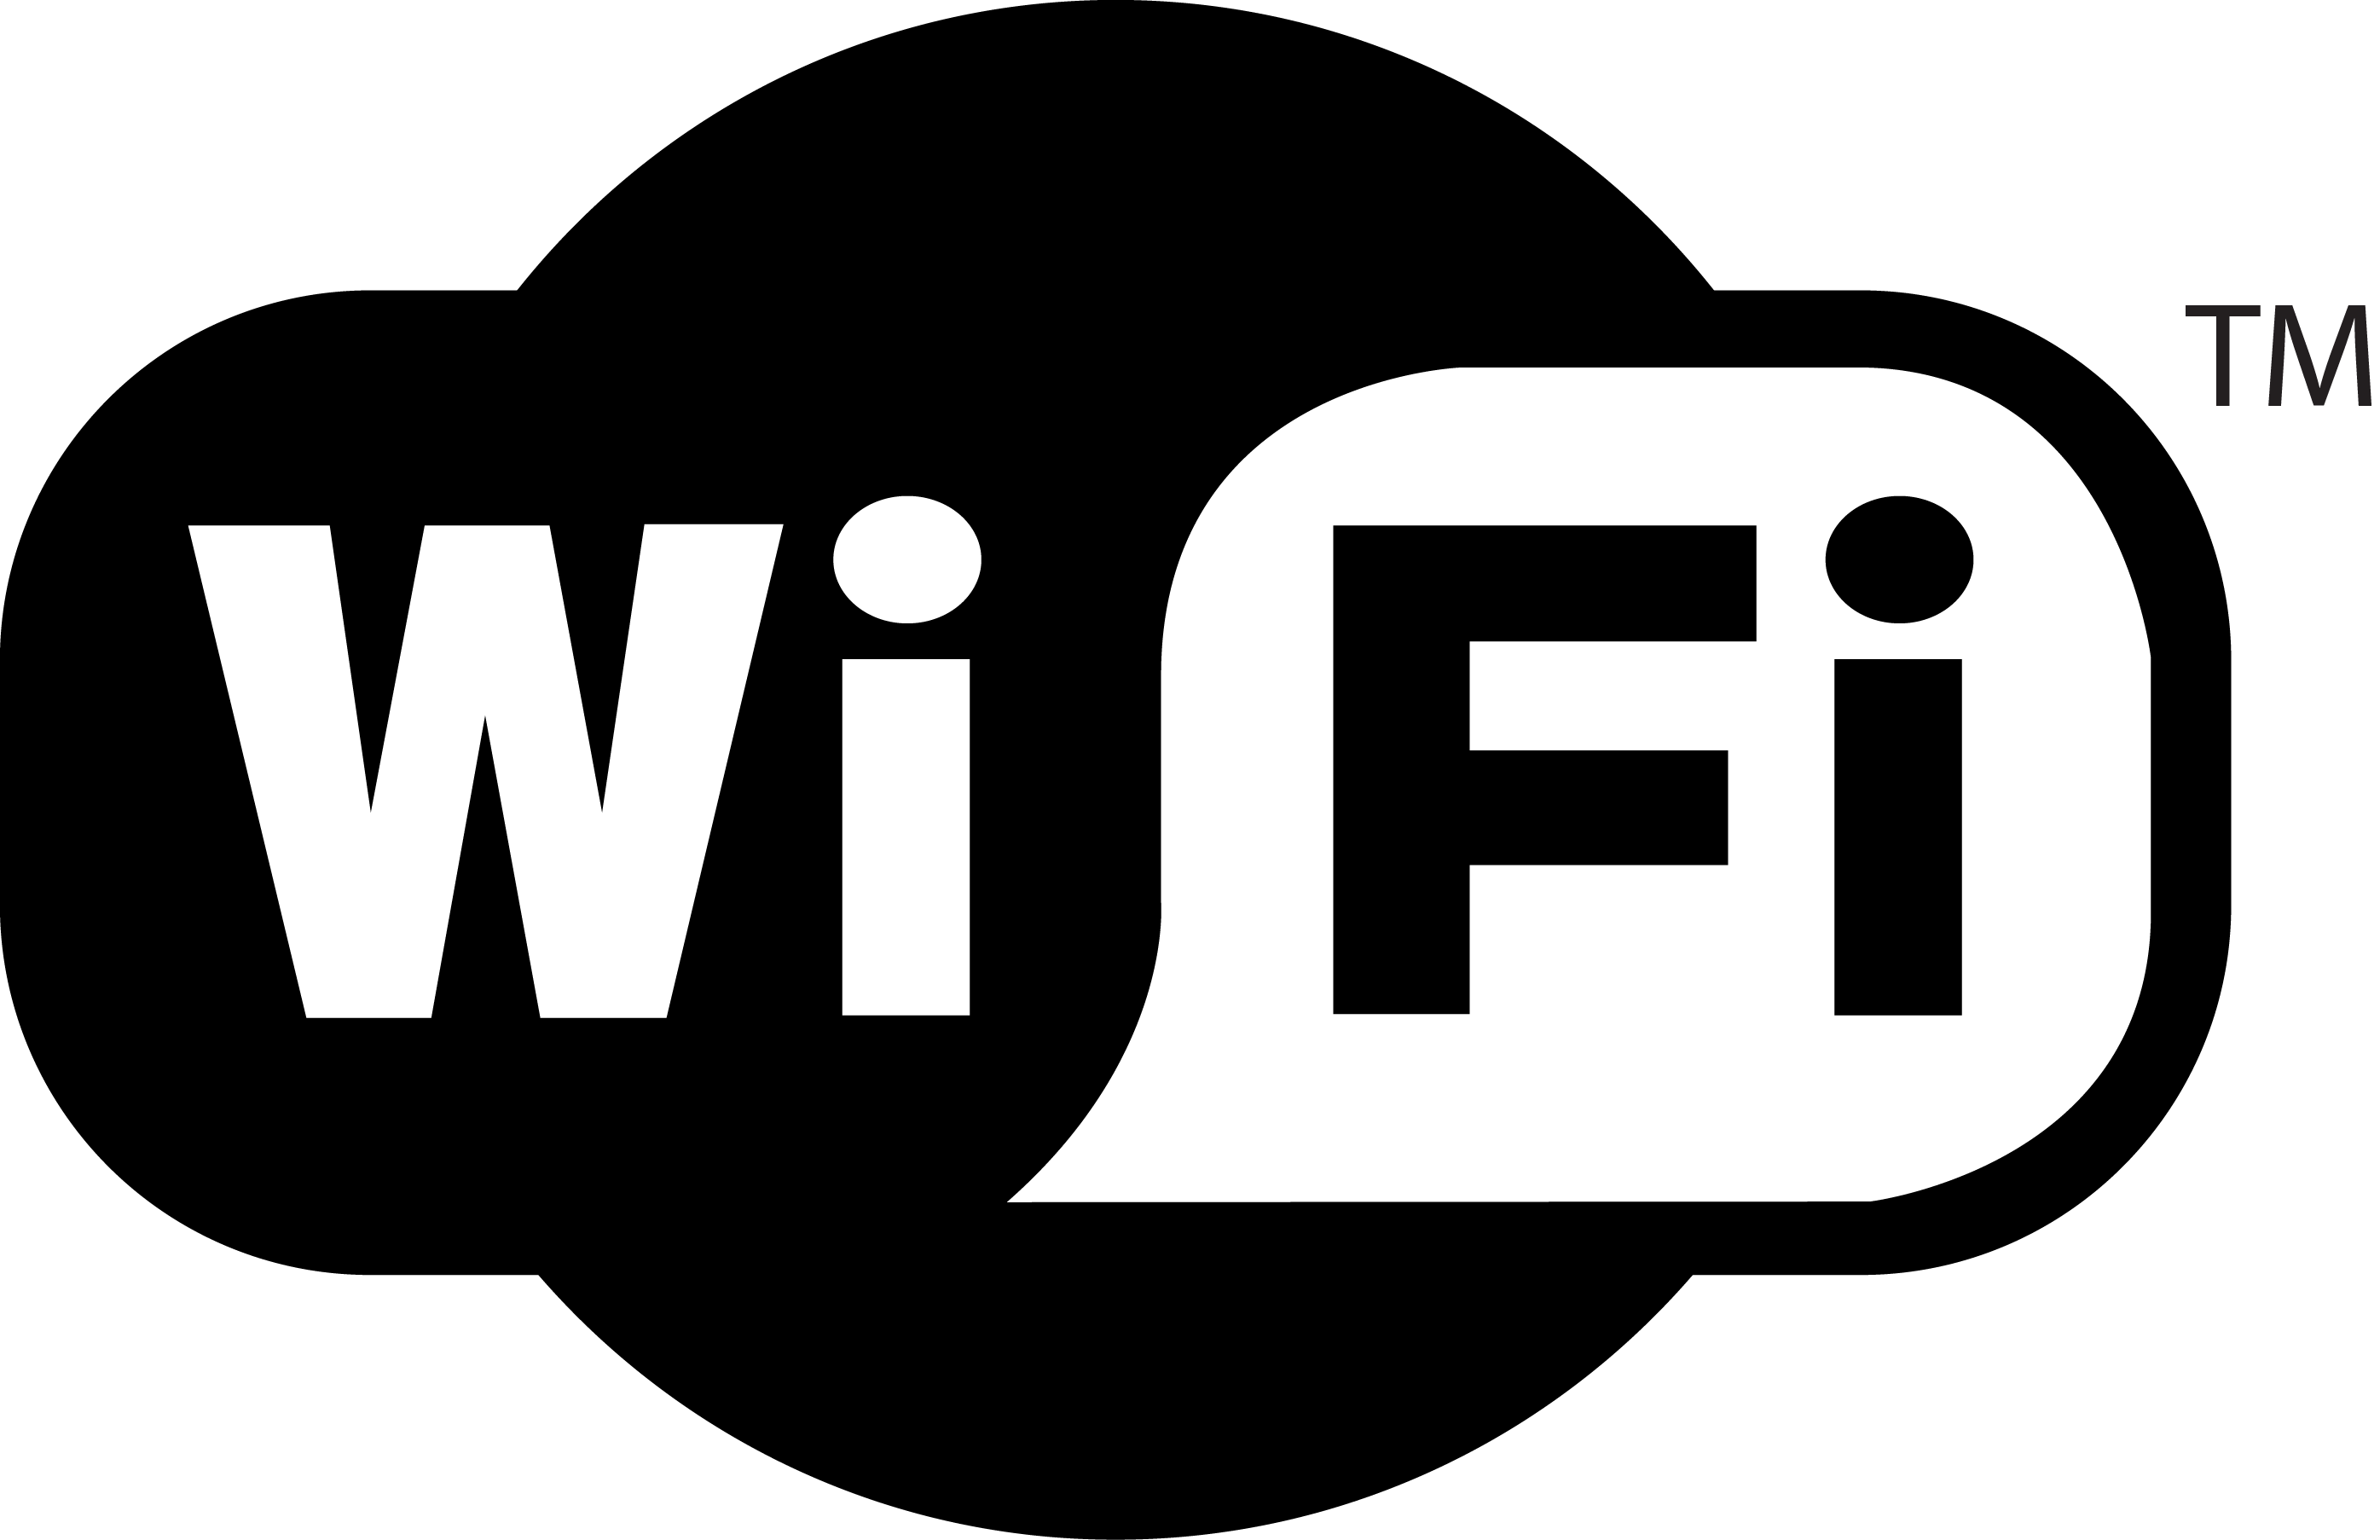 wifi vector logo